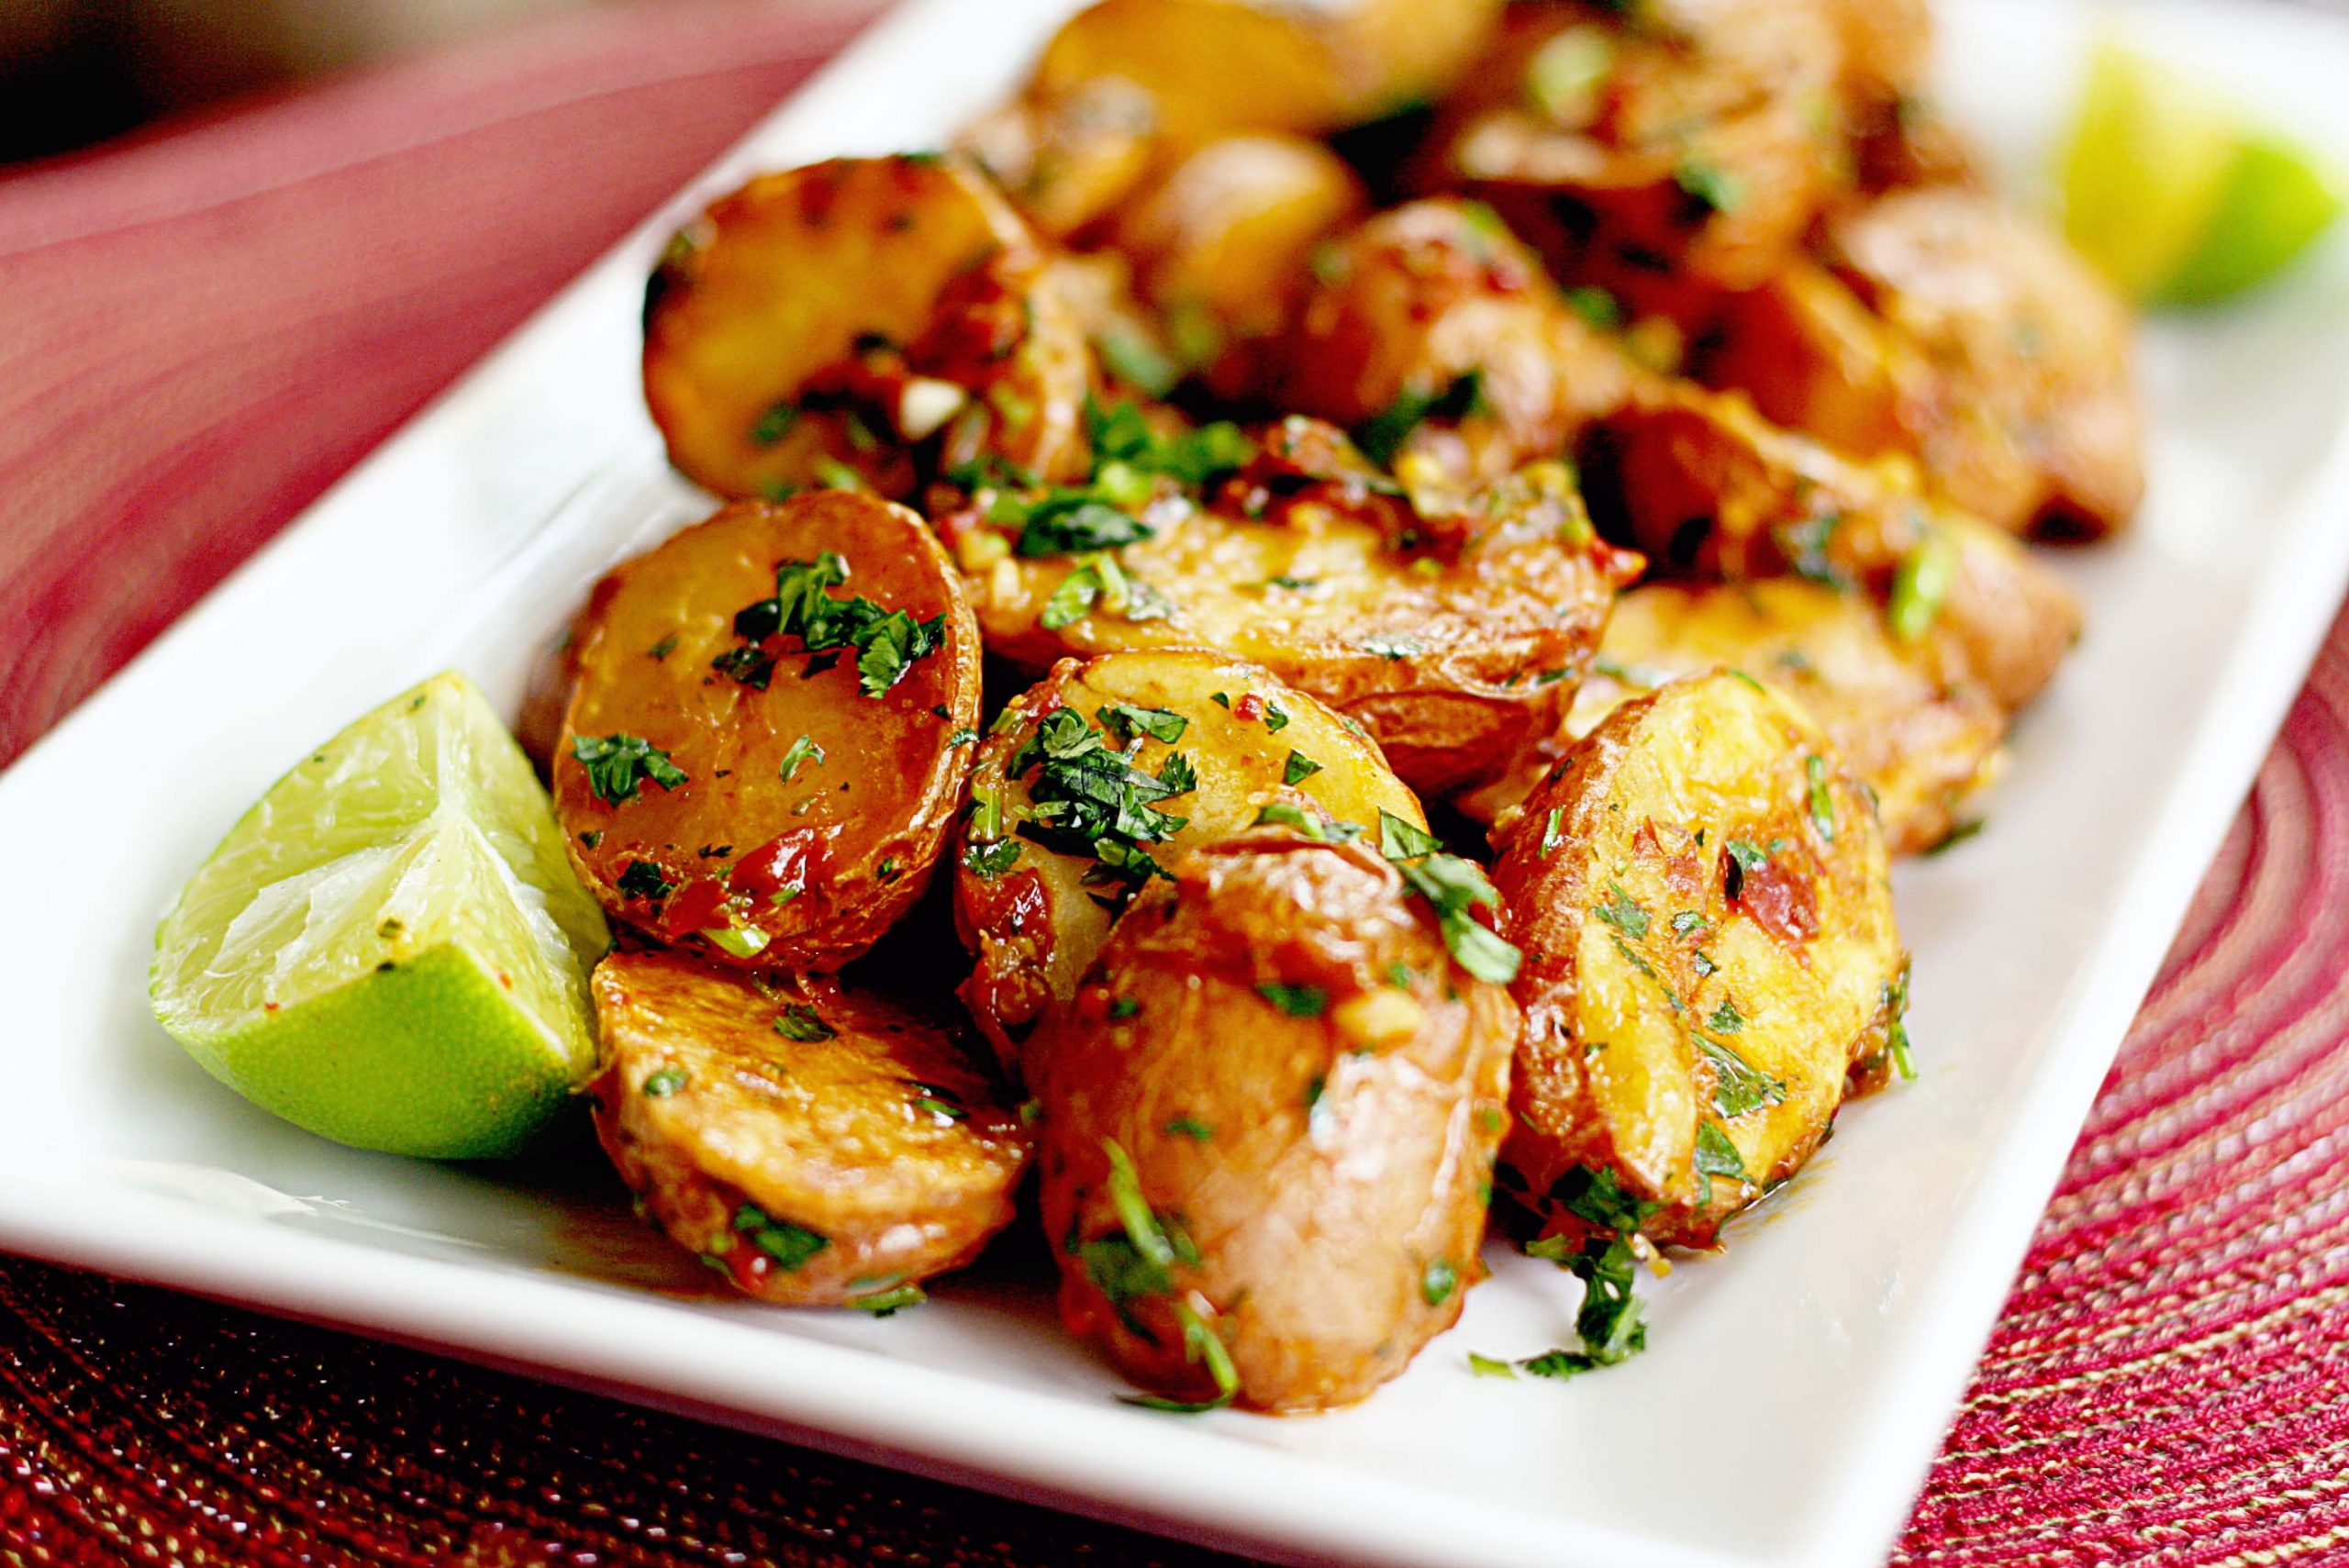 Loaded Roasted Potatoes With Bacon And Avocado Sauce Recipe.